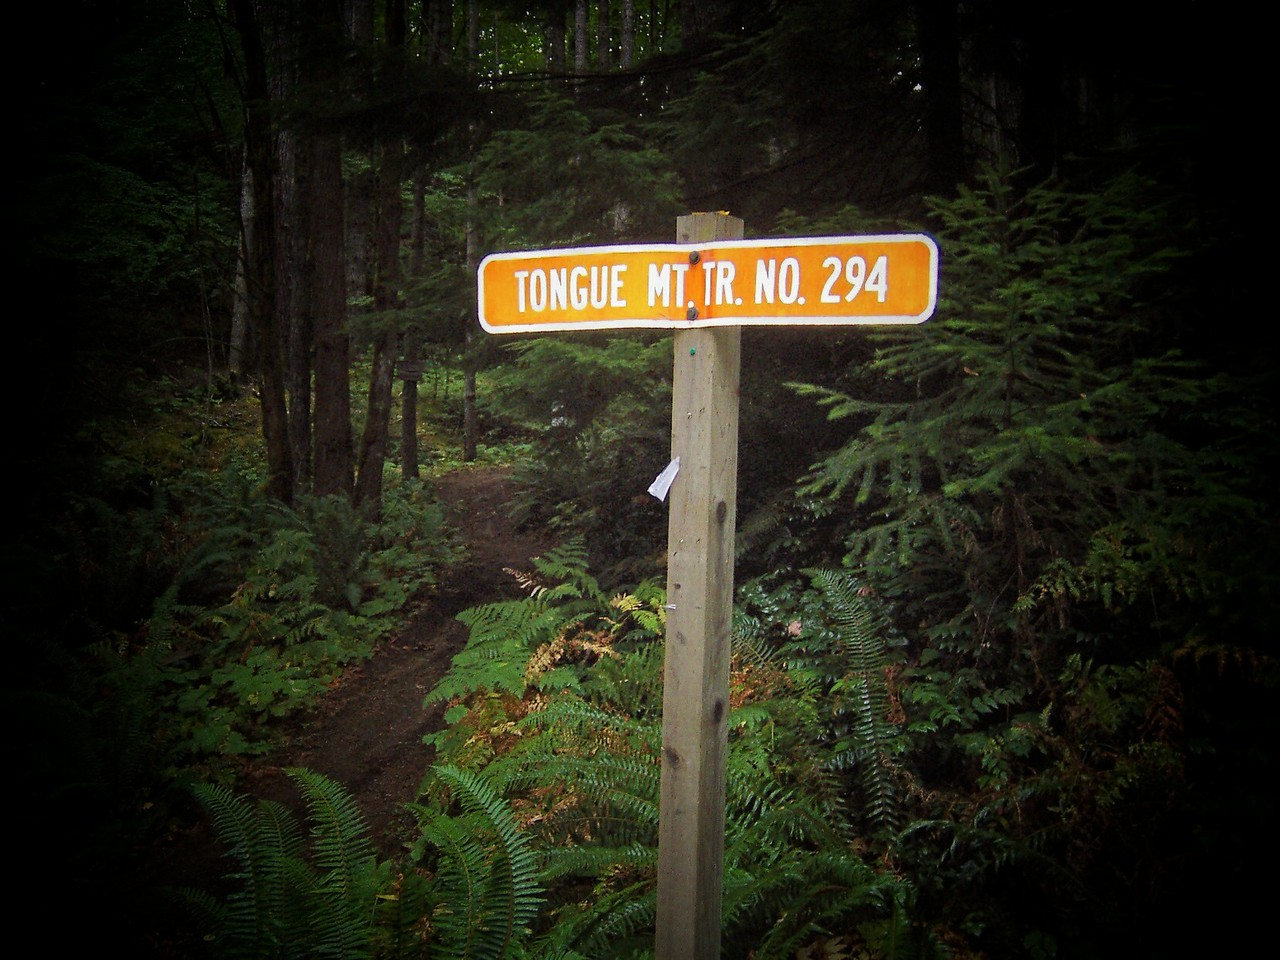 Good looking sign. Don't let that fool you, the trail is really tough!